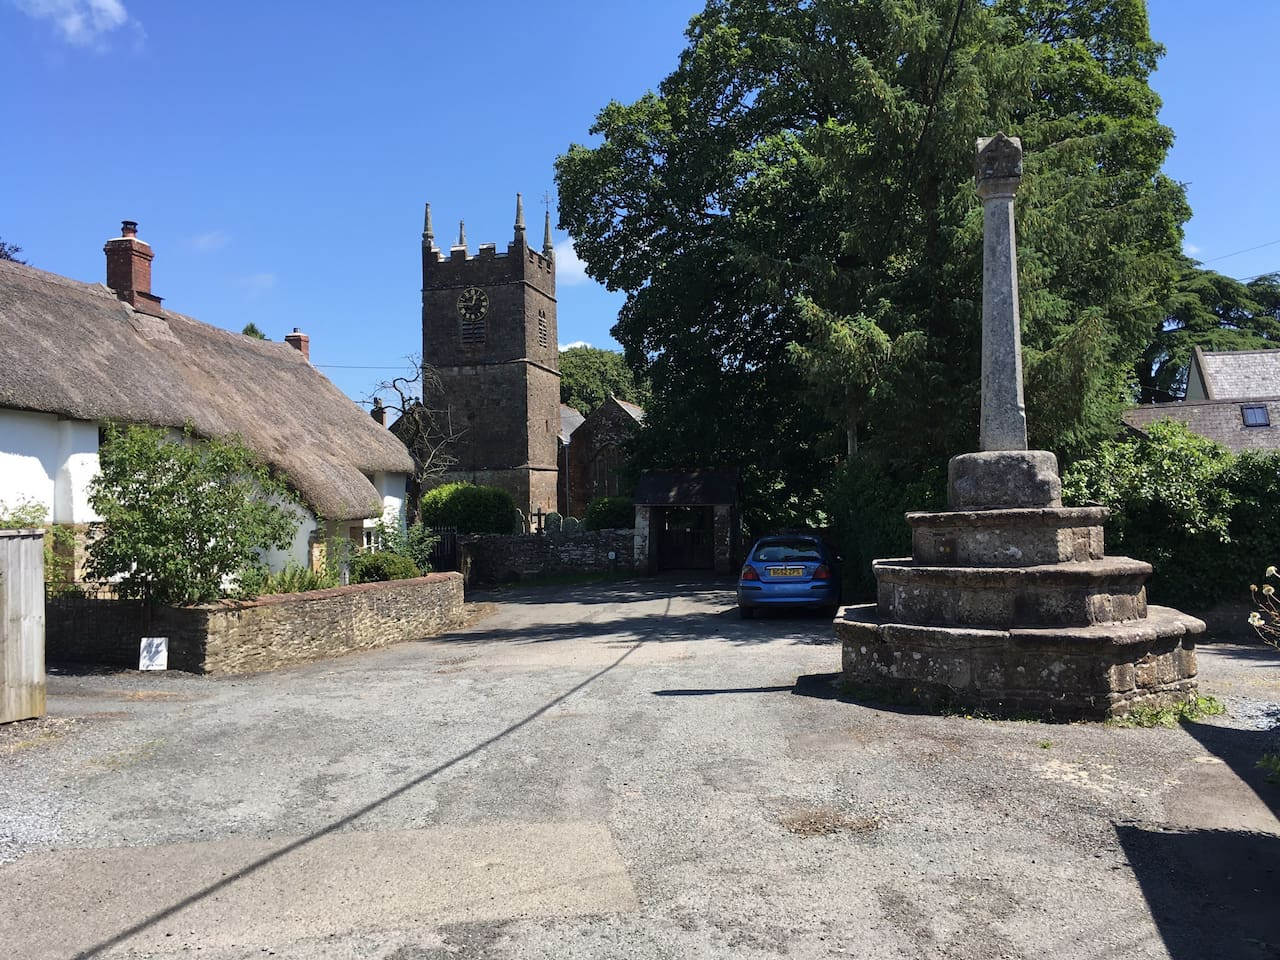 Northlew church and market cross.